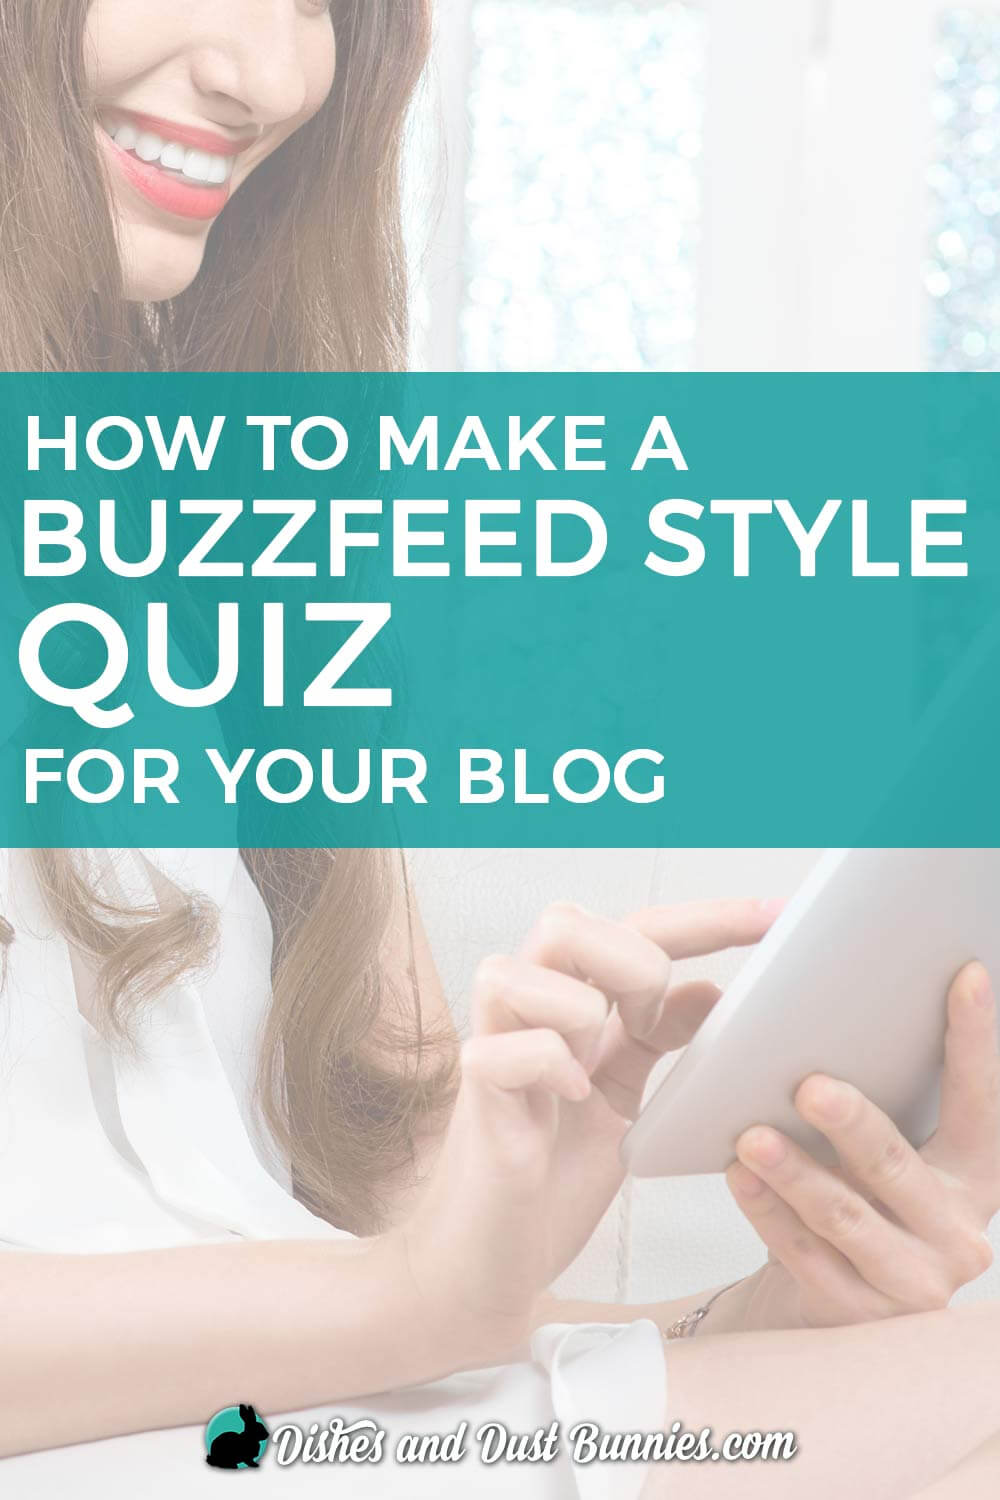 How to make a Buzzfeed Style Quiz for your Blog - from dishesanddustbunnies.com